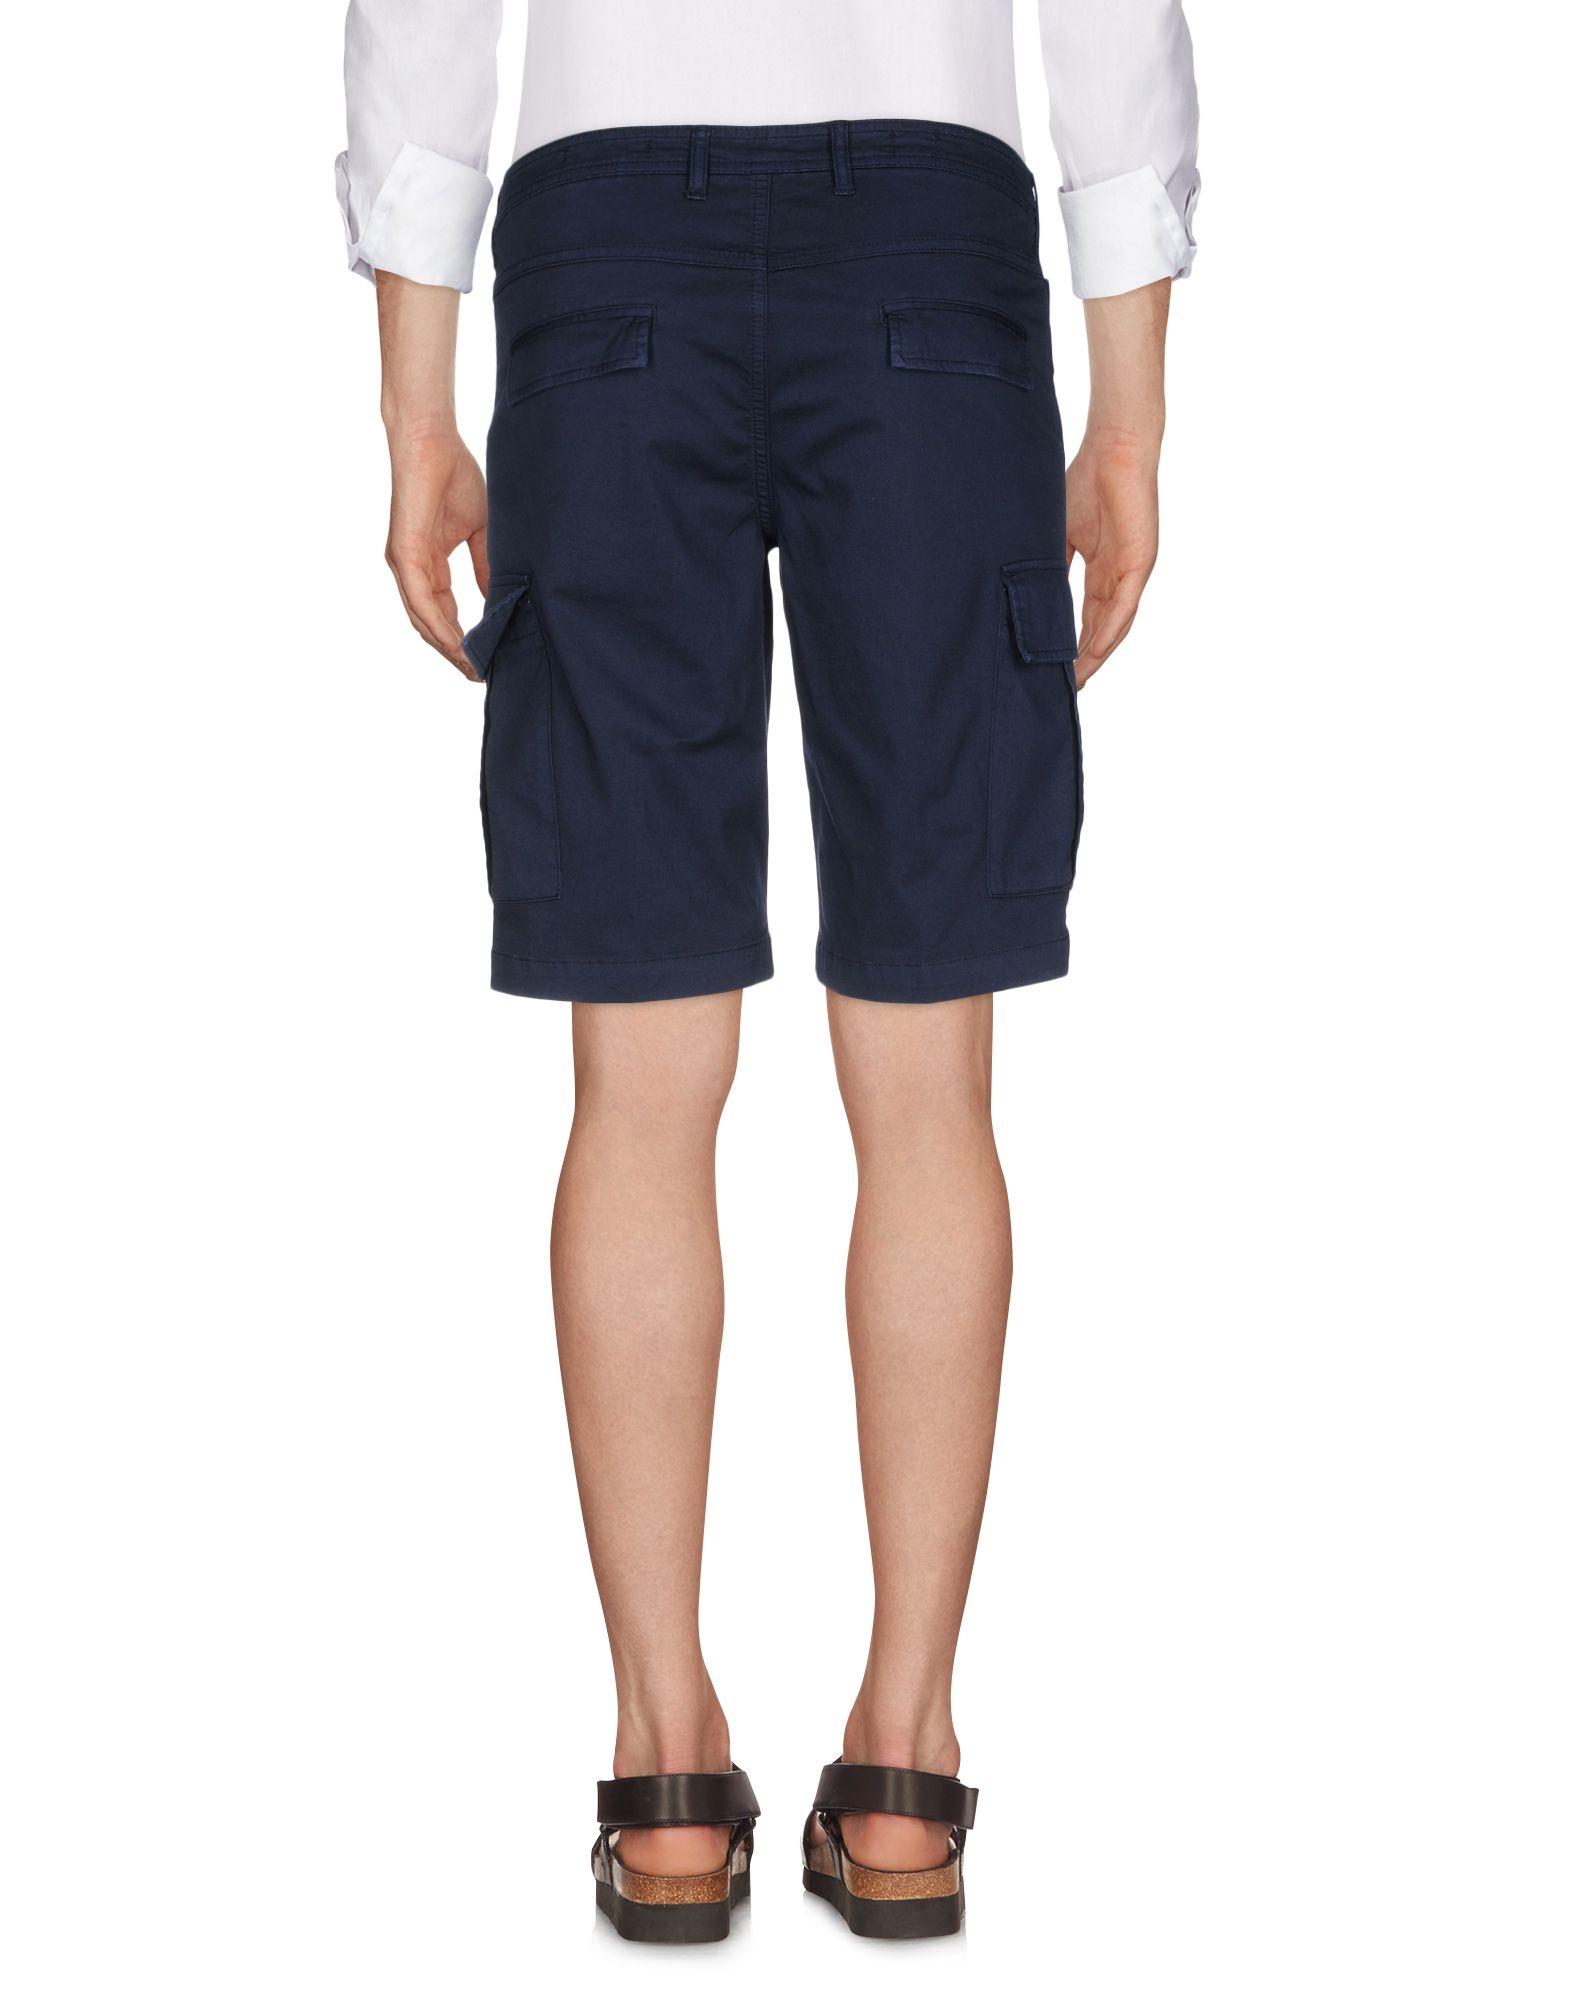 Shorts 13116818TG & Bermuda 2Nd Floor Uomo - 13116818TG Shorts 5207c2